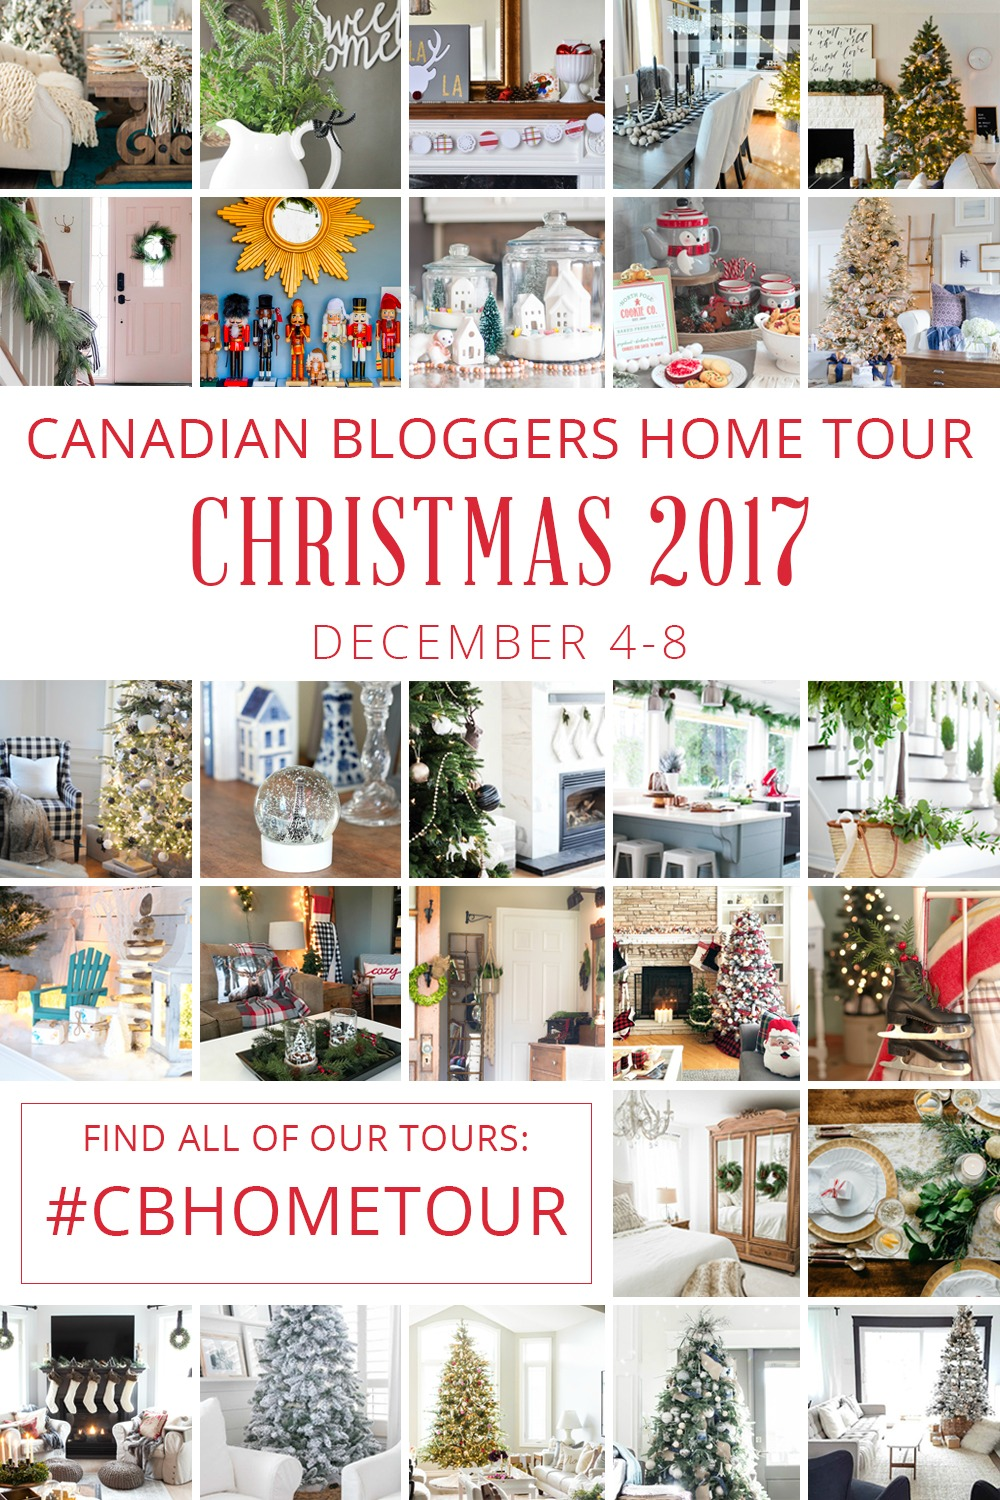 Canadian Bloggers Christmas Home Tour 2017 - See these beautiful homes all decked out for the holidays at SatoriDesignforLiving.com